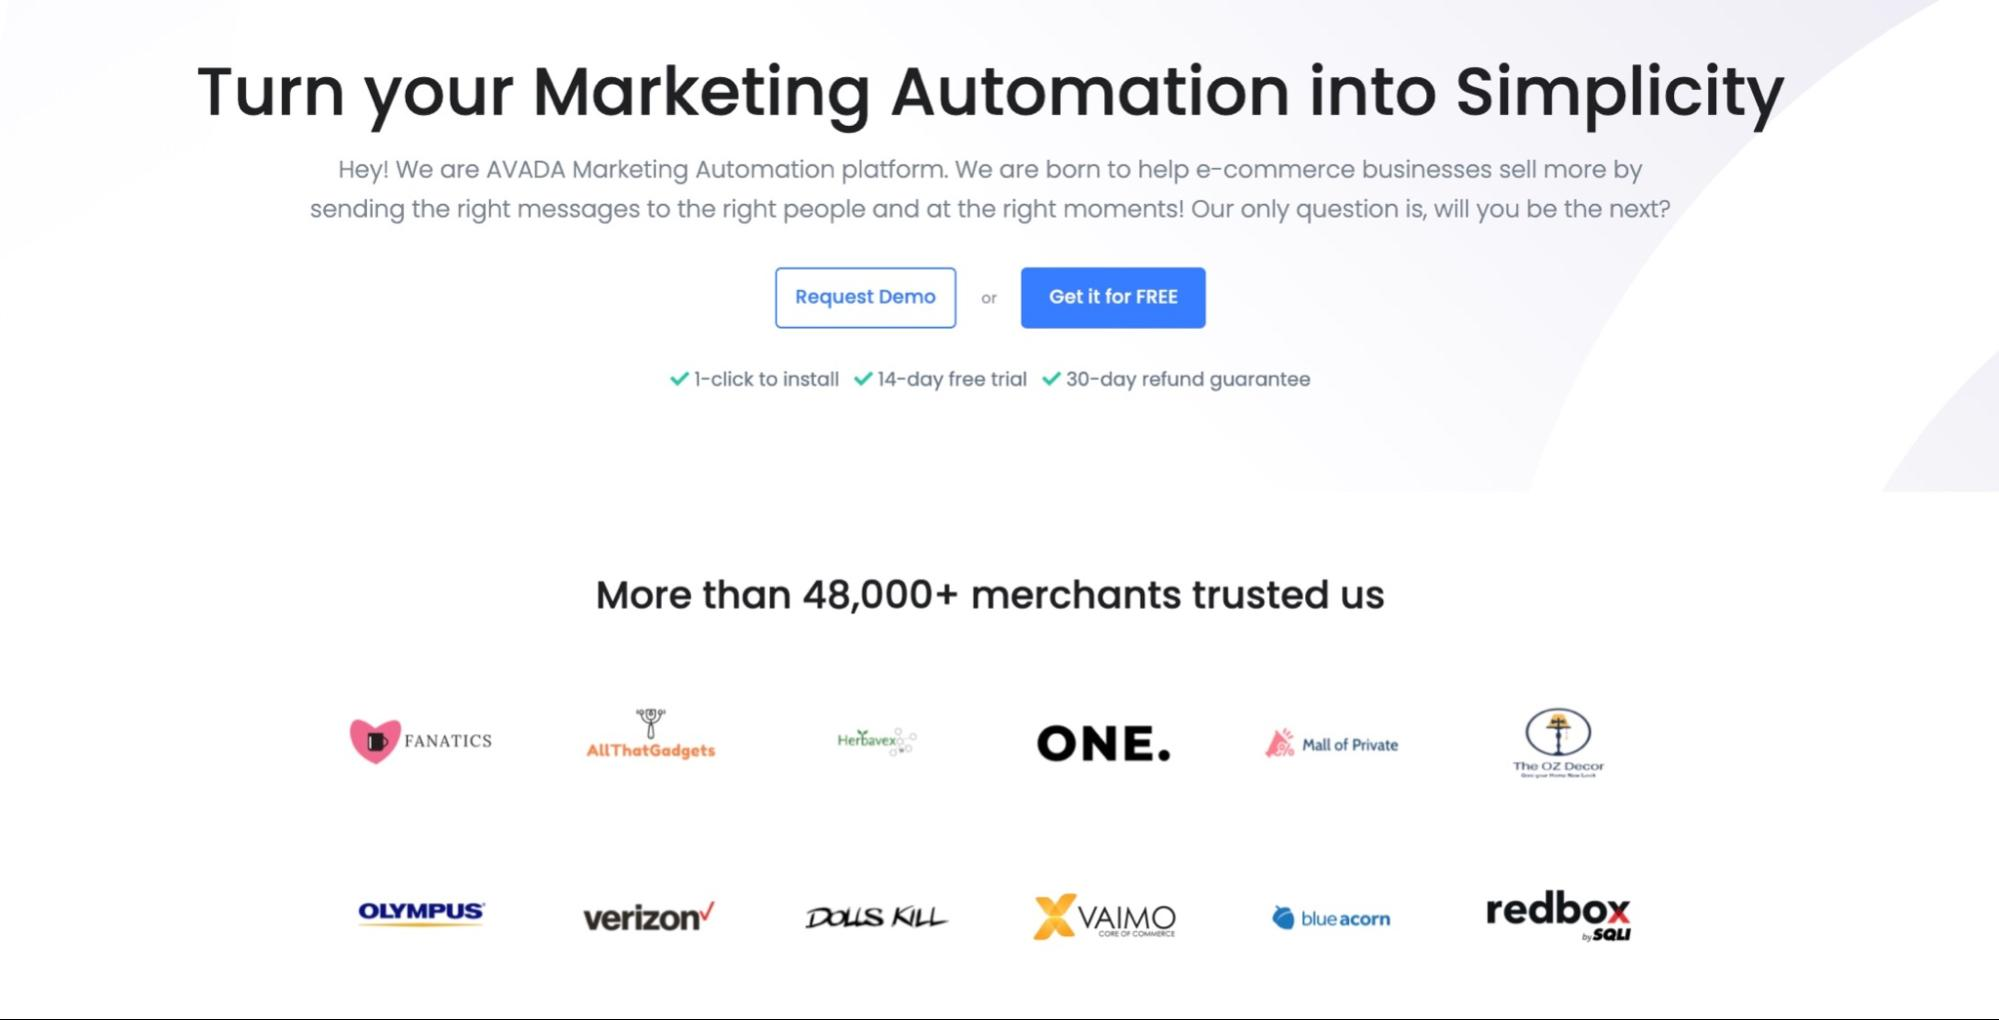 Segment your email list with AVADA Marketing Automation